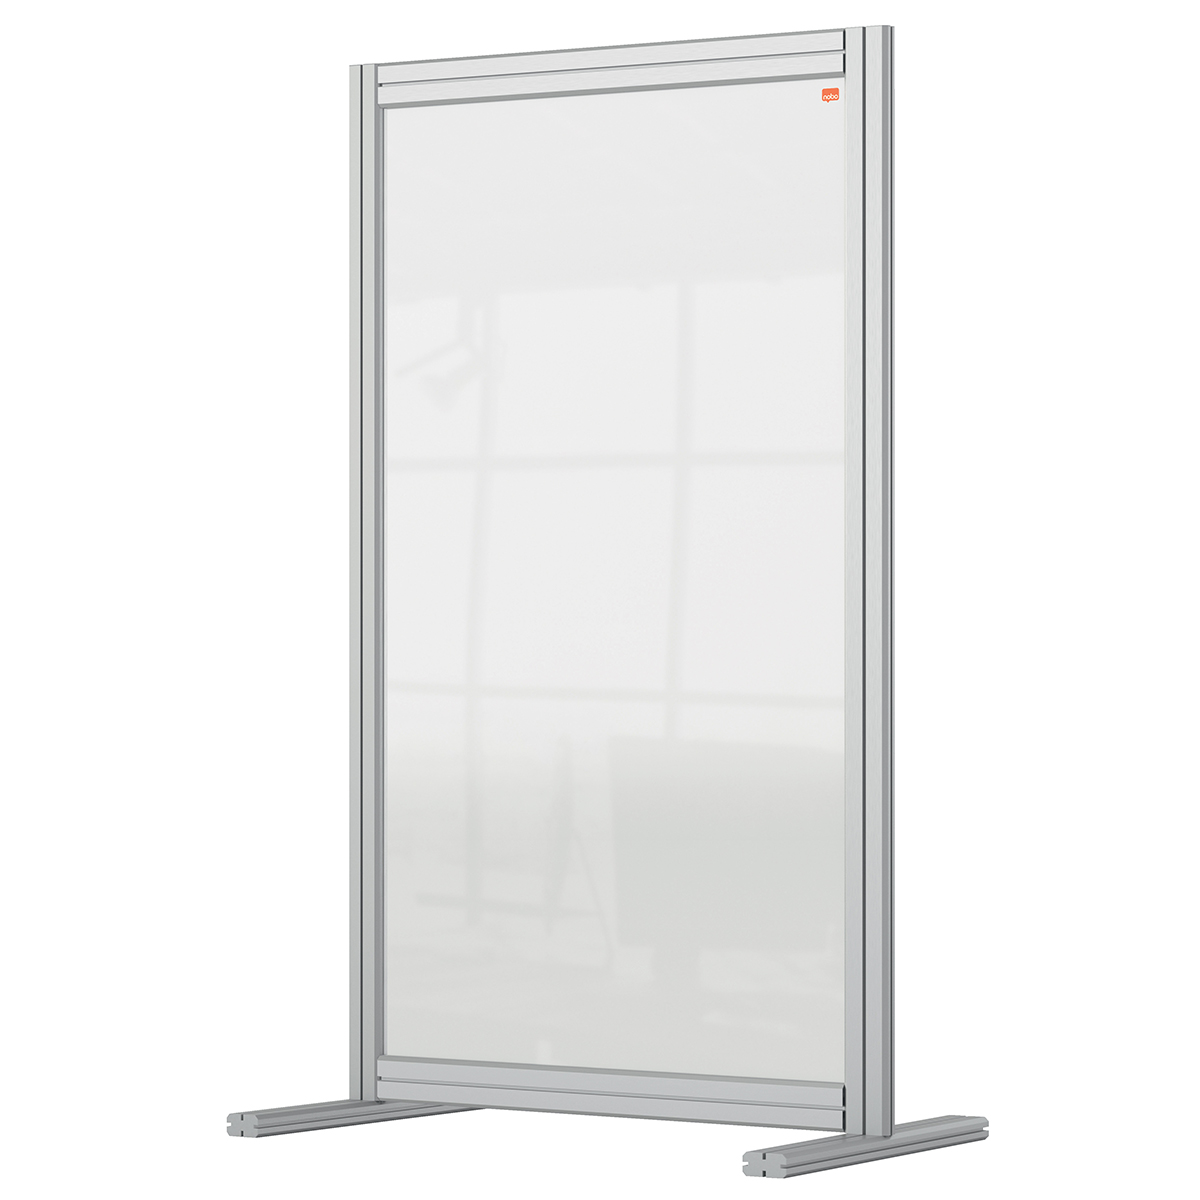 Nobo 1915493 Premium Plus Desk Divider 600x1000mm Acrylic